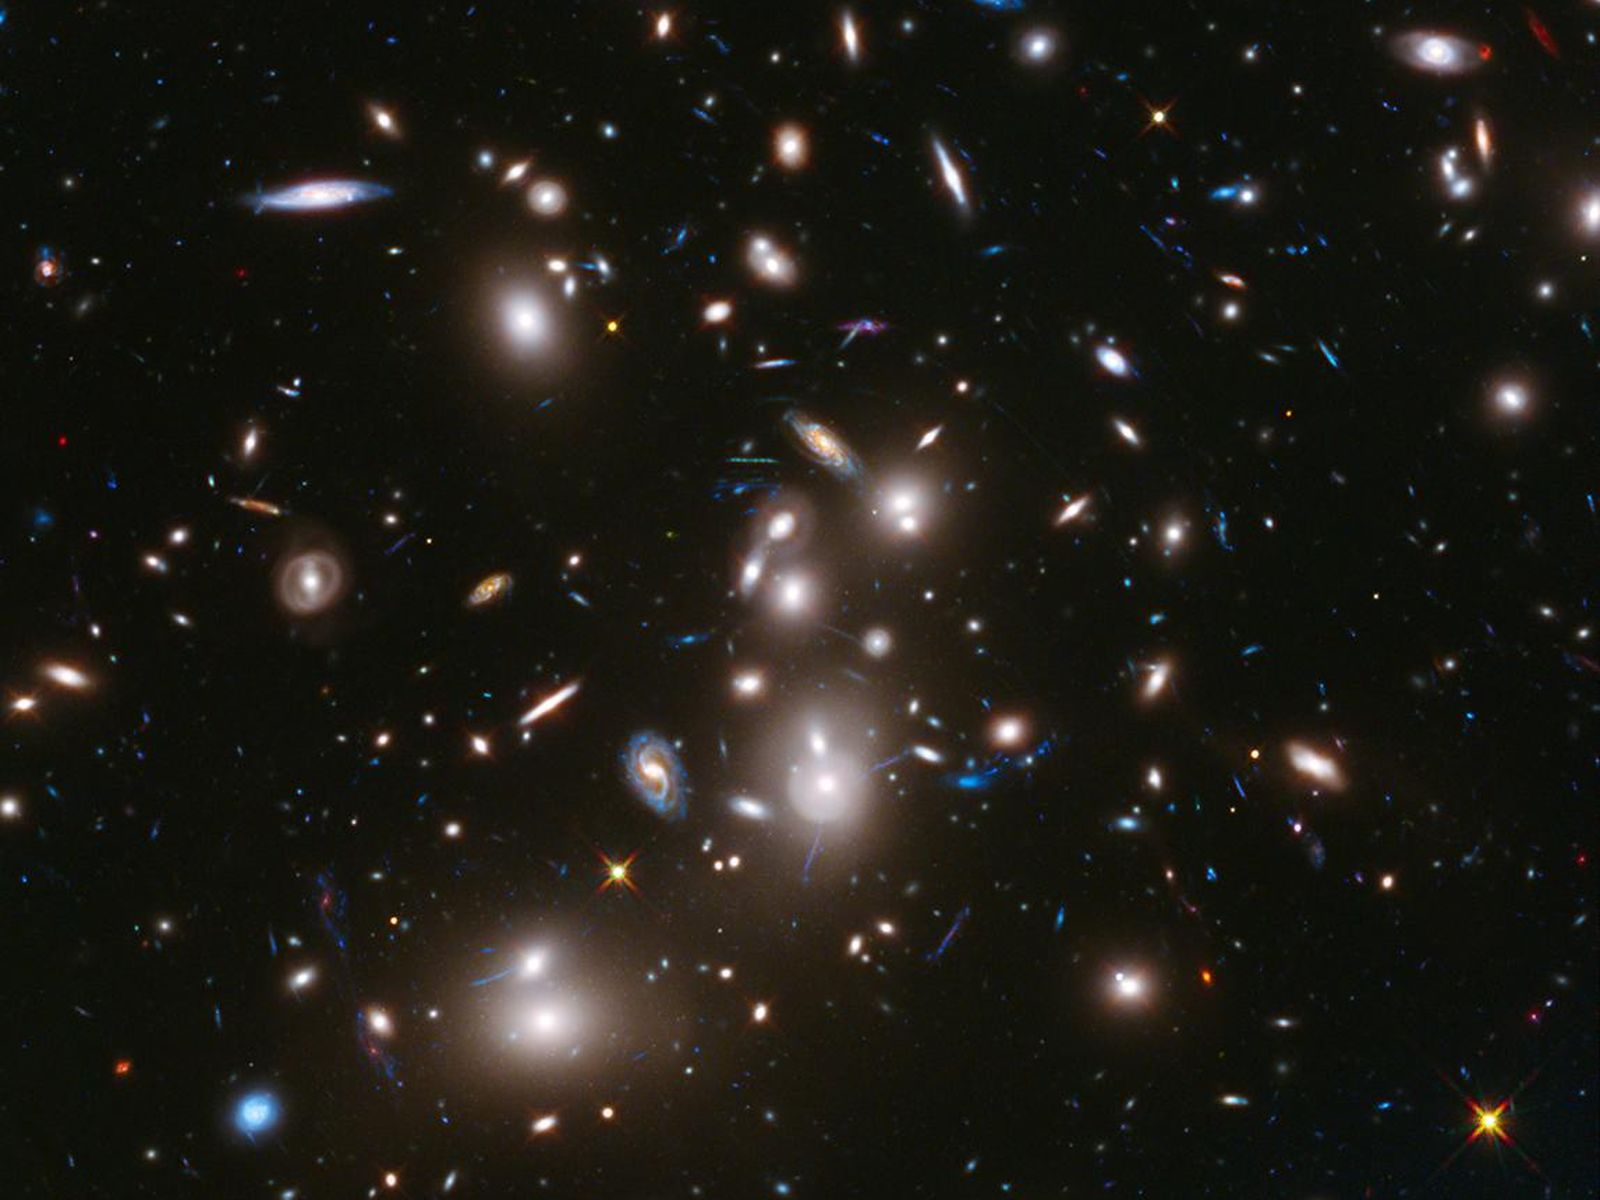 space images | hubble frontier field abell 2744